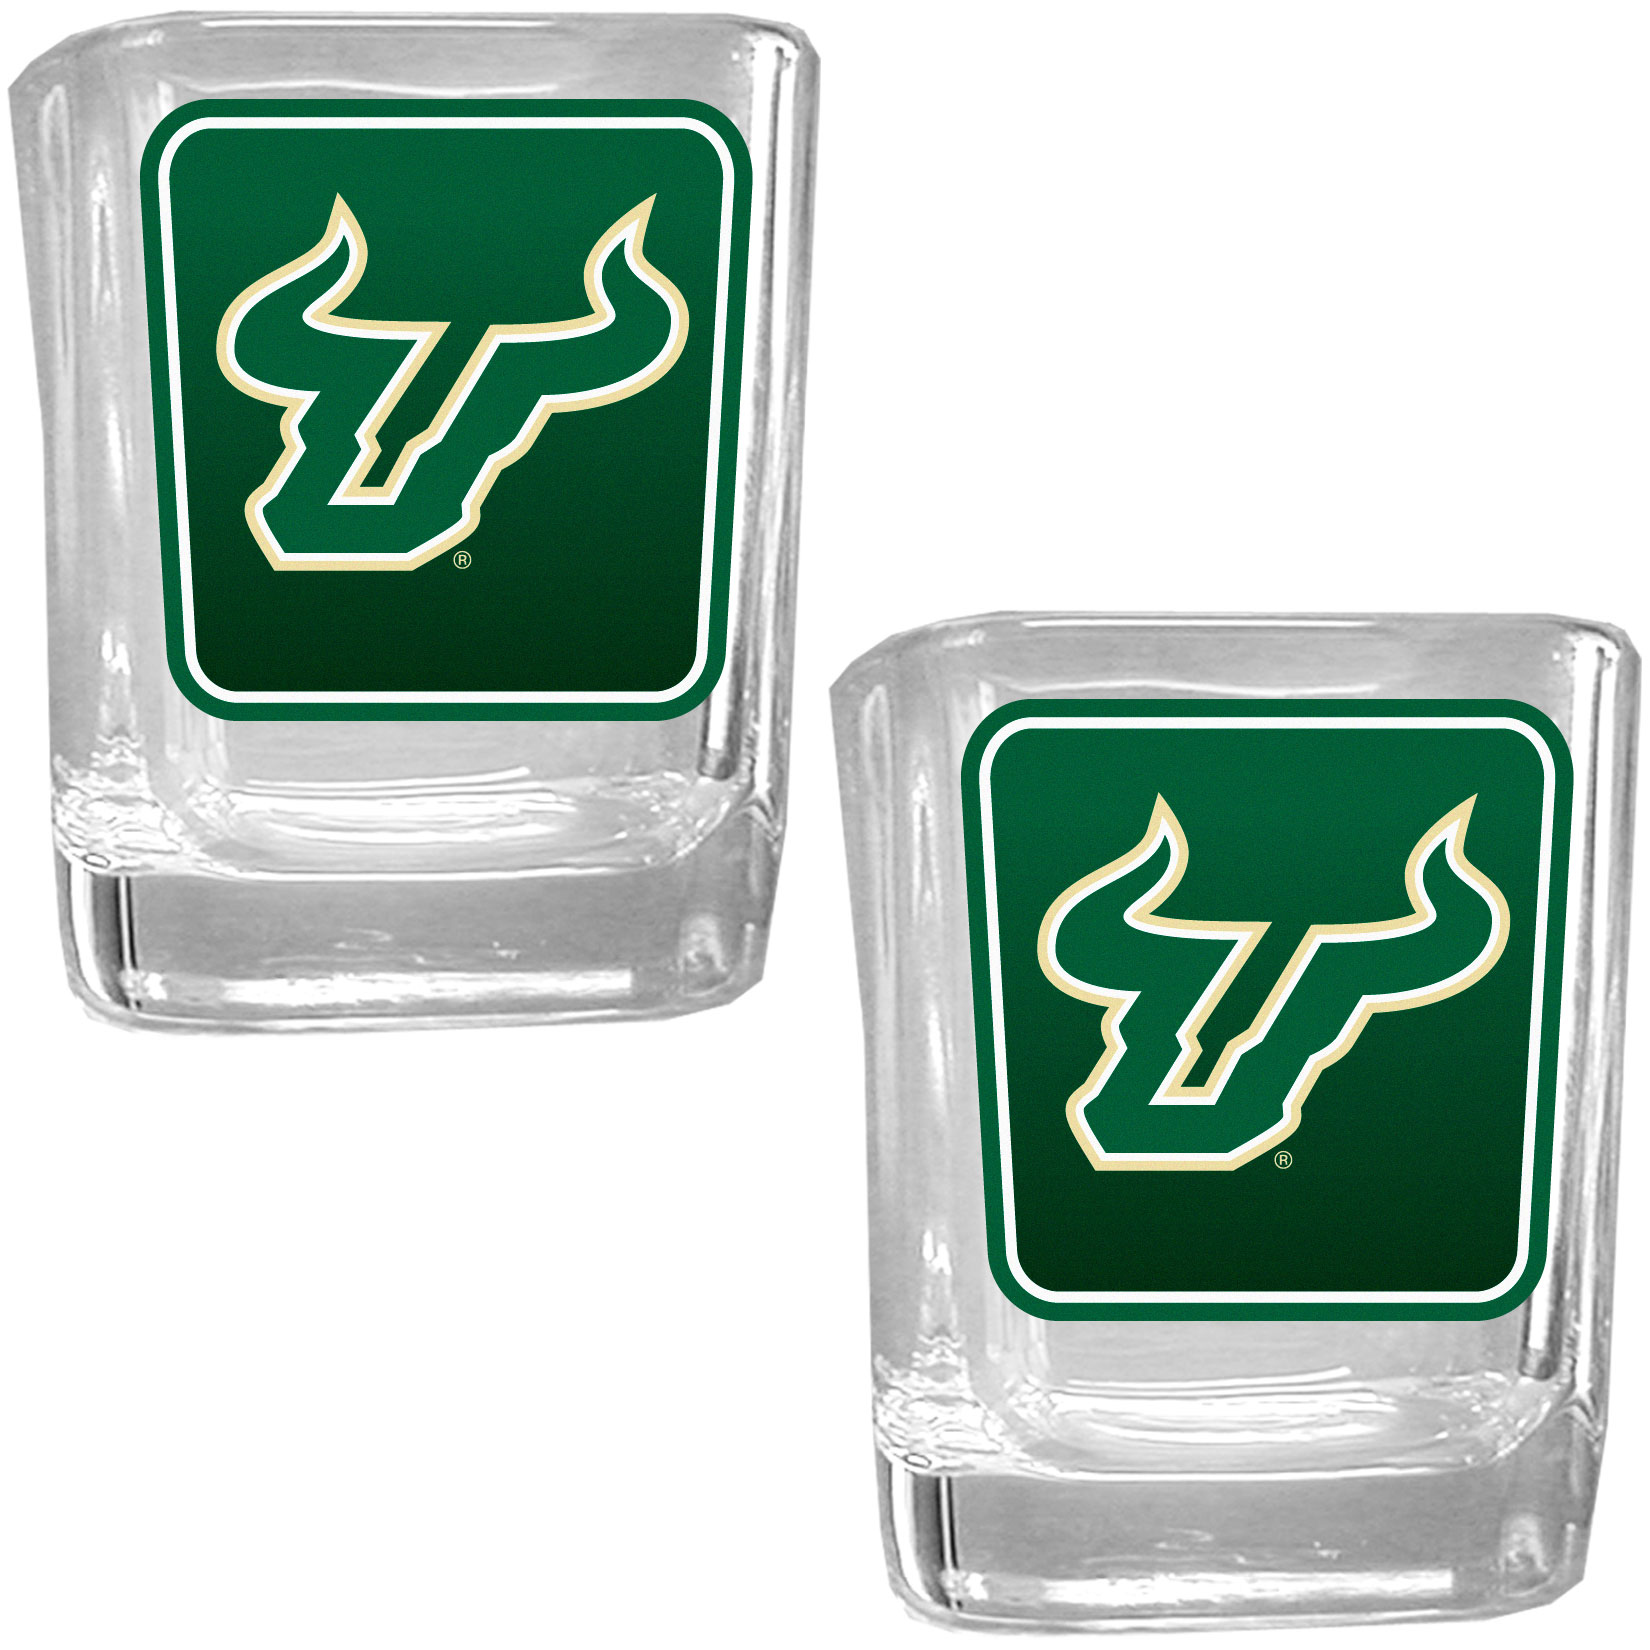 S. Florida Bulls Square Glass Shot Glass Set - Our glass shot glasses are perfect for collectors or any game day event. The 2 ounce glasses feature bright, vidid digital S. Florida Bulls graphics. Comes in a set of 2.